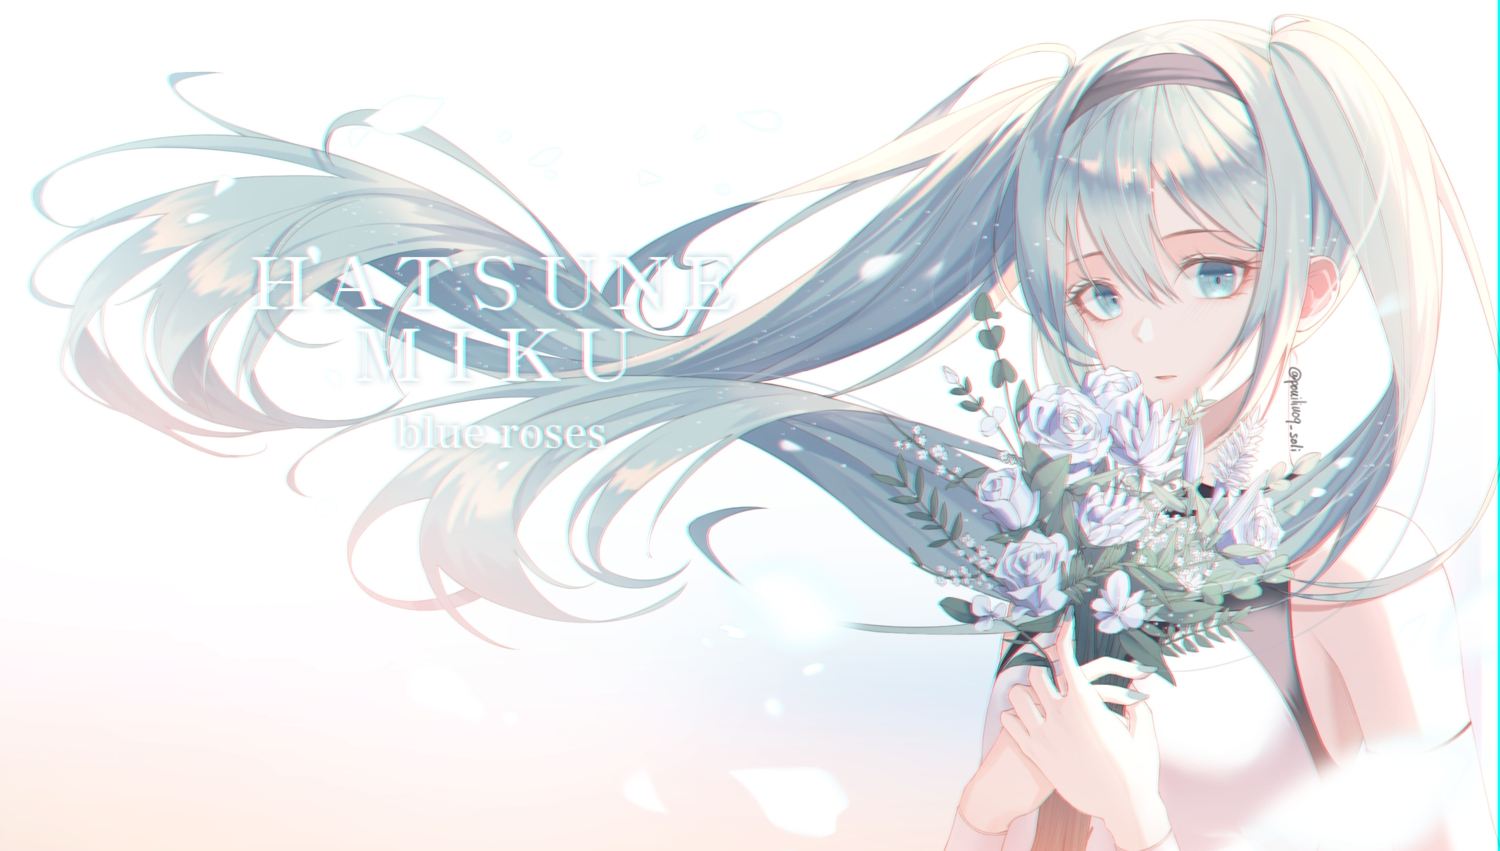 aqua_eyes aqua_hair flowers hatsune_miku long_hair rose signed soli_(pouiliuoq_soli) twintails vocaloid